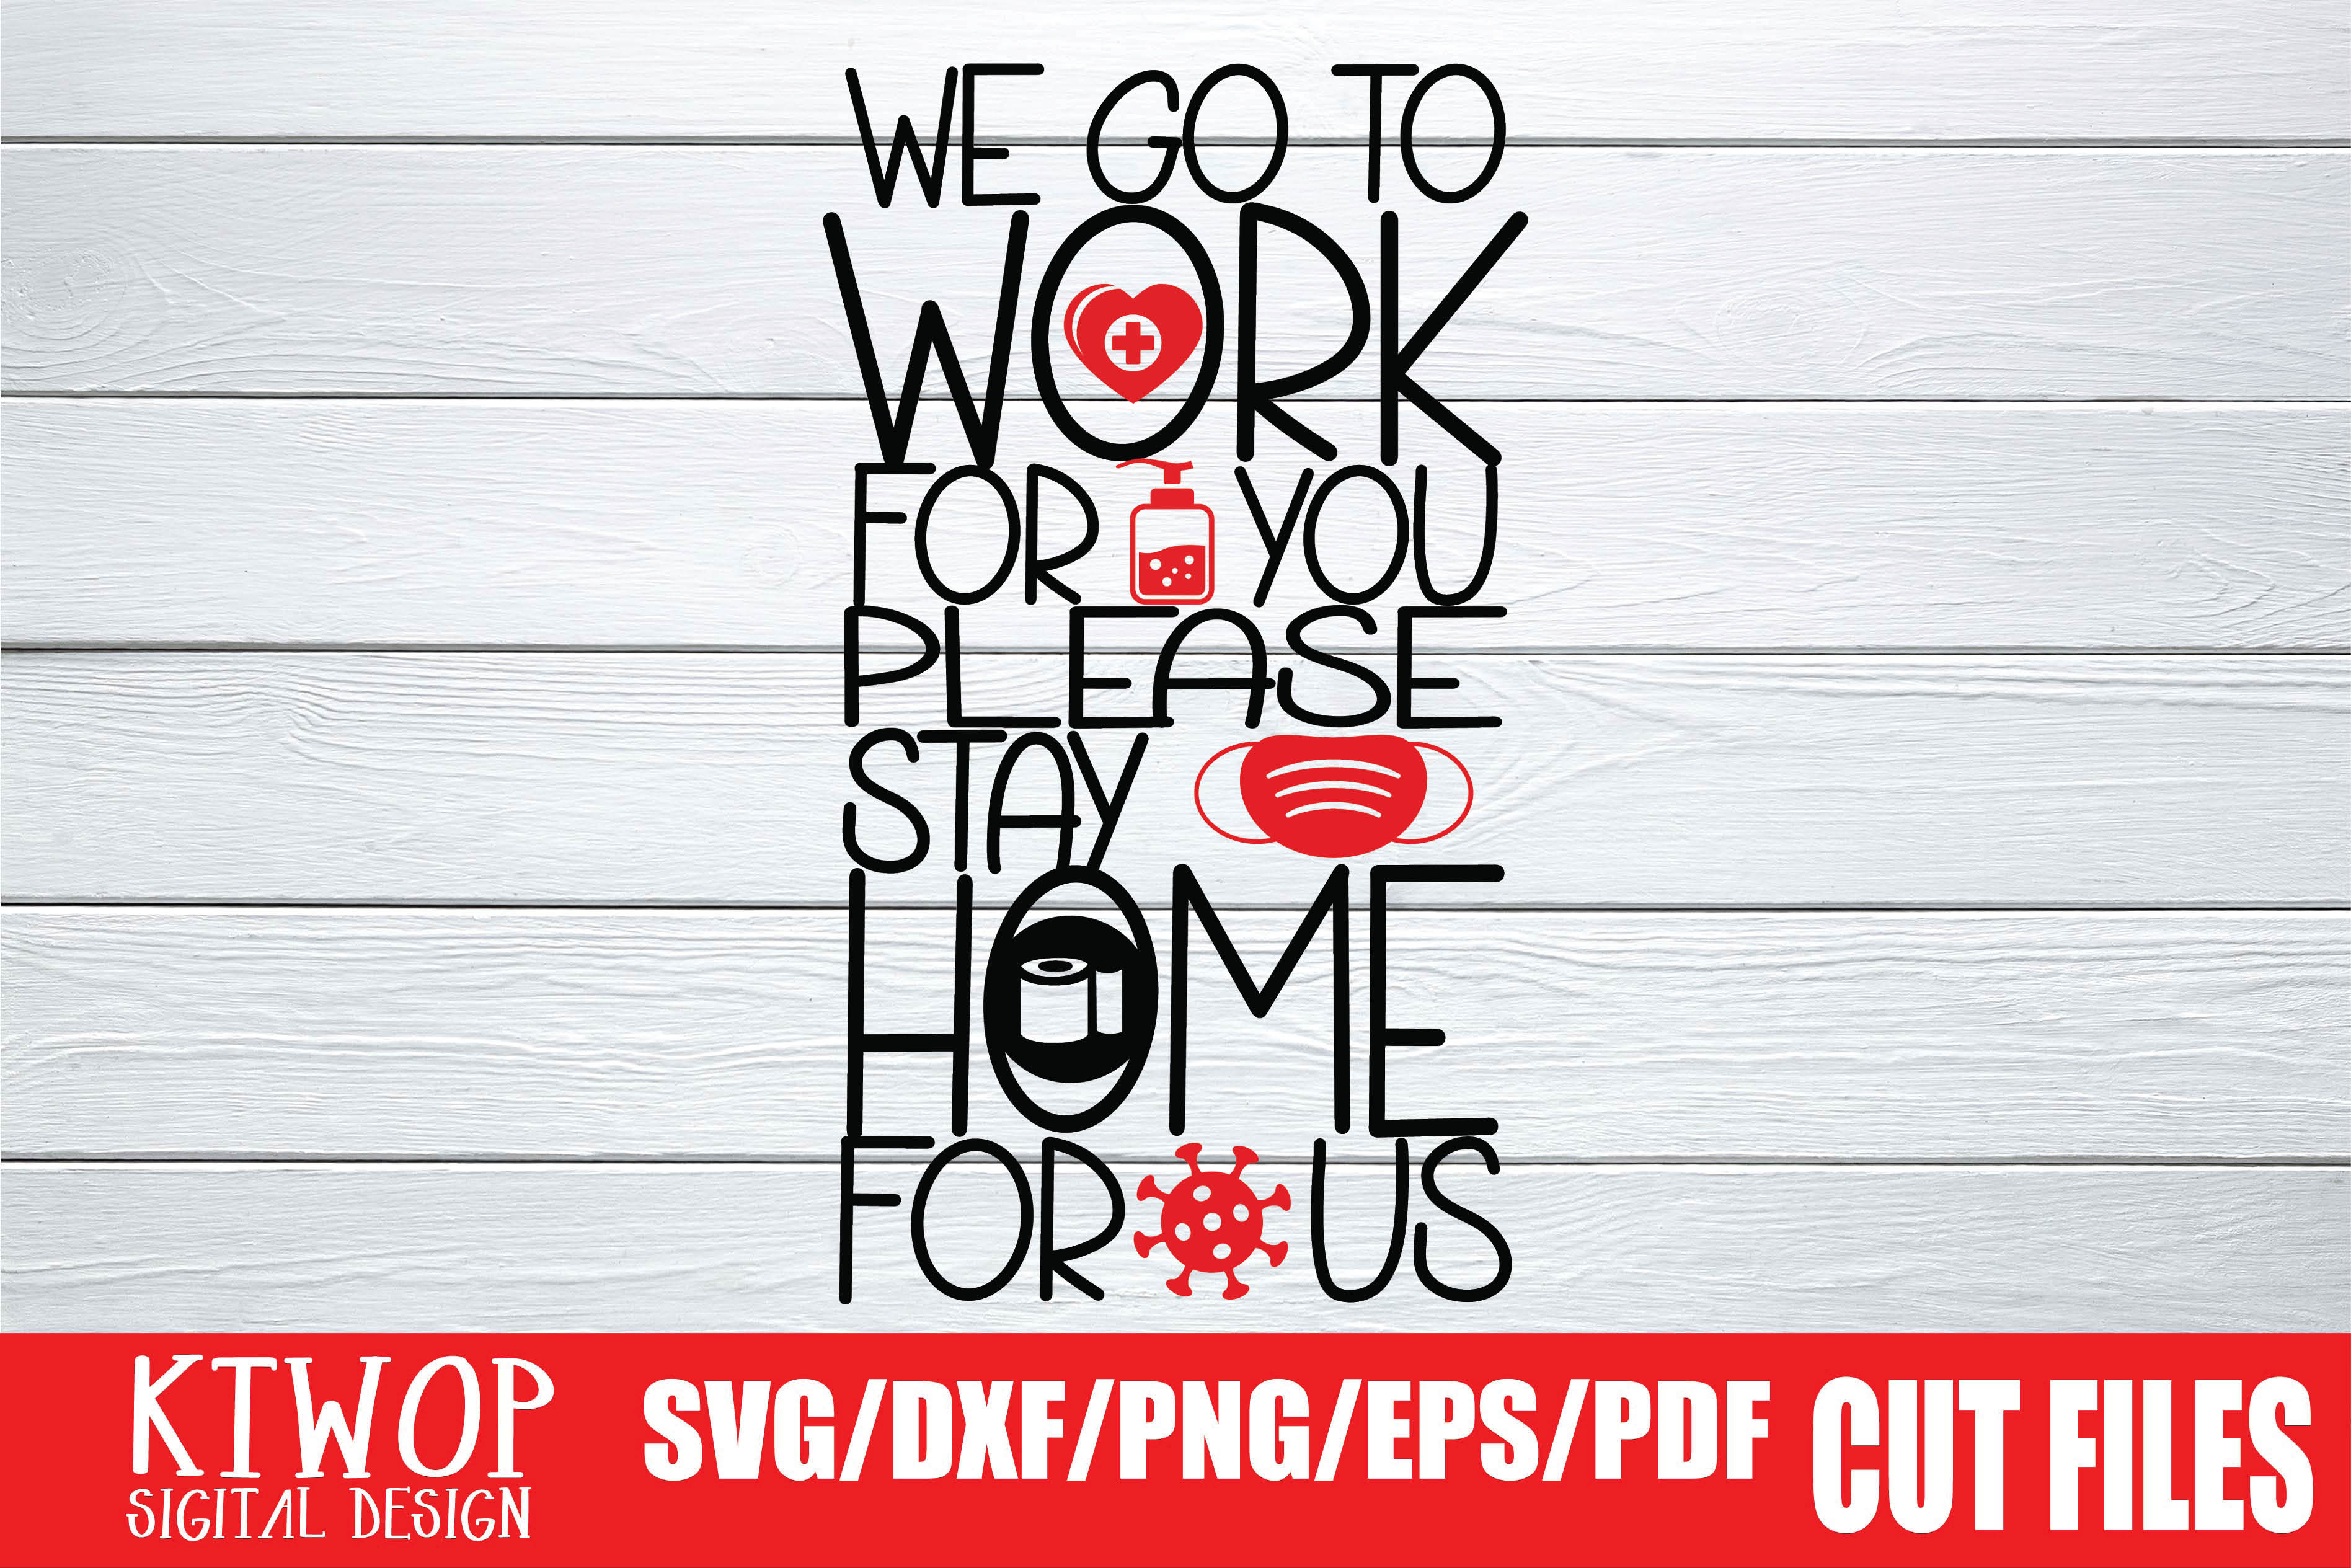 Download Free We Go To Work For You Please Stay Home For Us Graphic By Ktwop for Cricut Explore, Silhouette and other cutting machines.